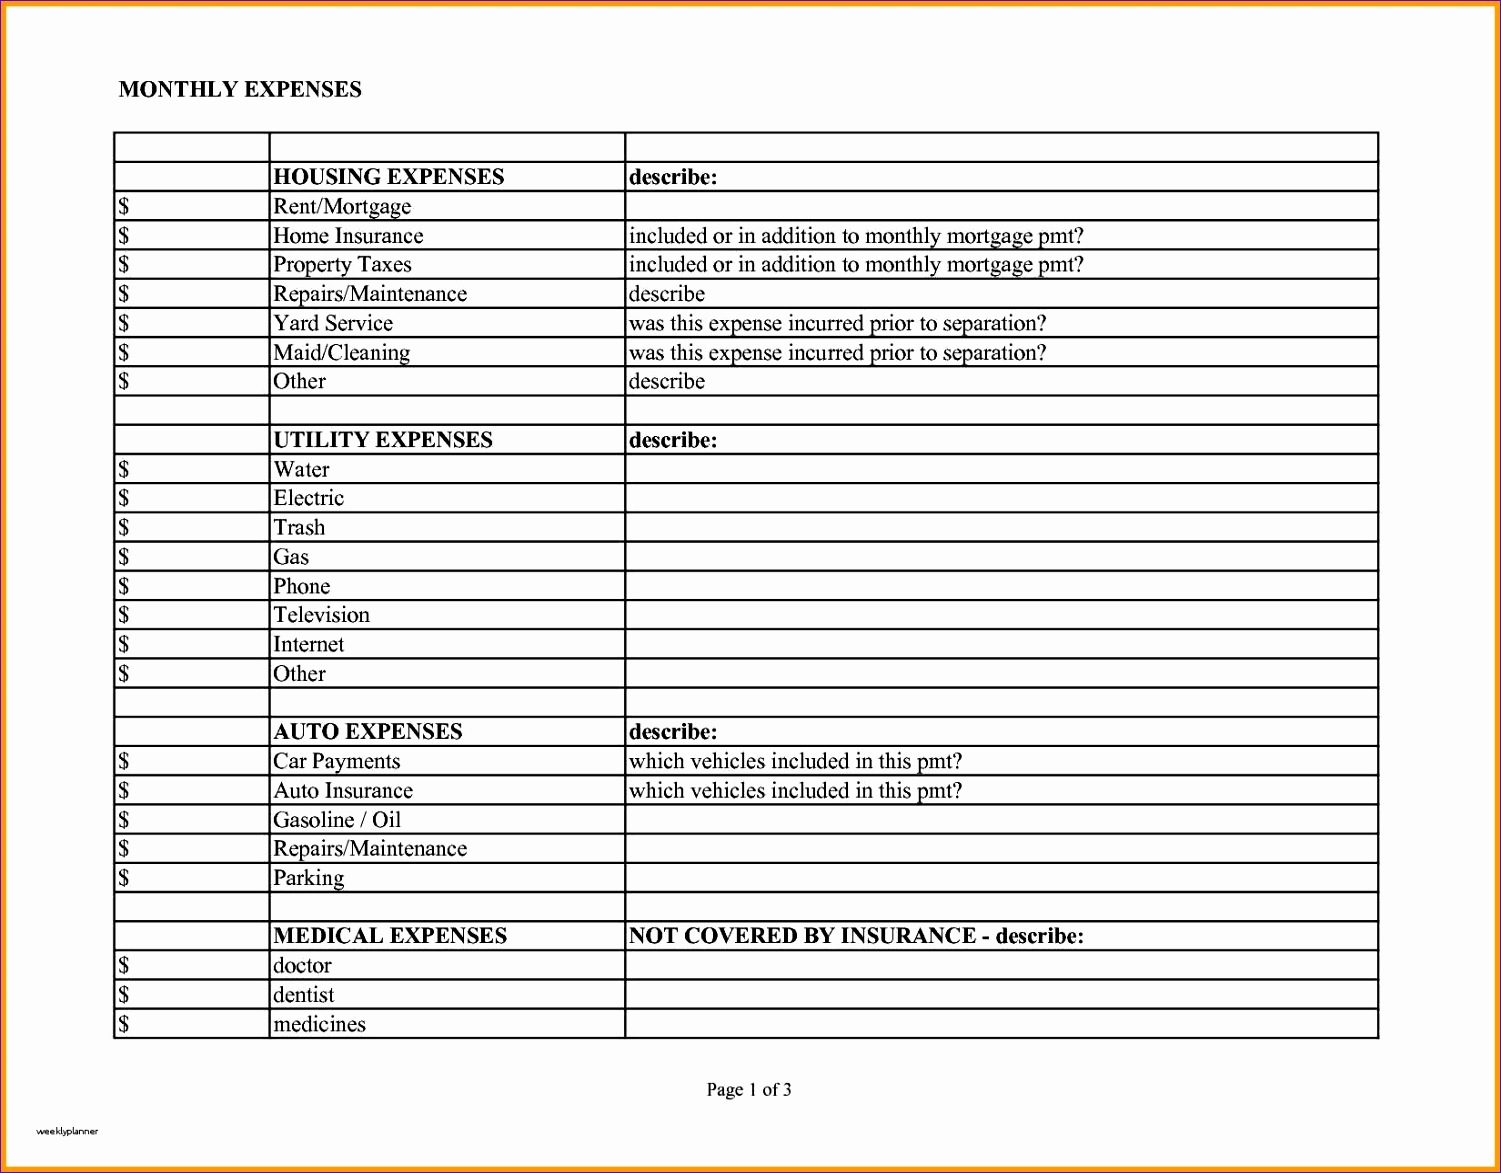 monthly expenses template lovely business expense spreadsheet template free of monthly expenses template